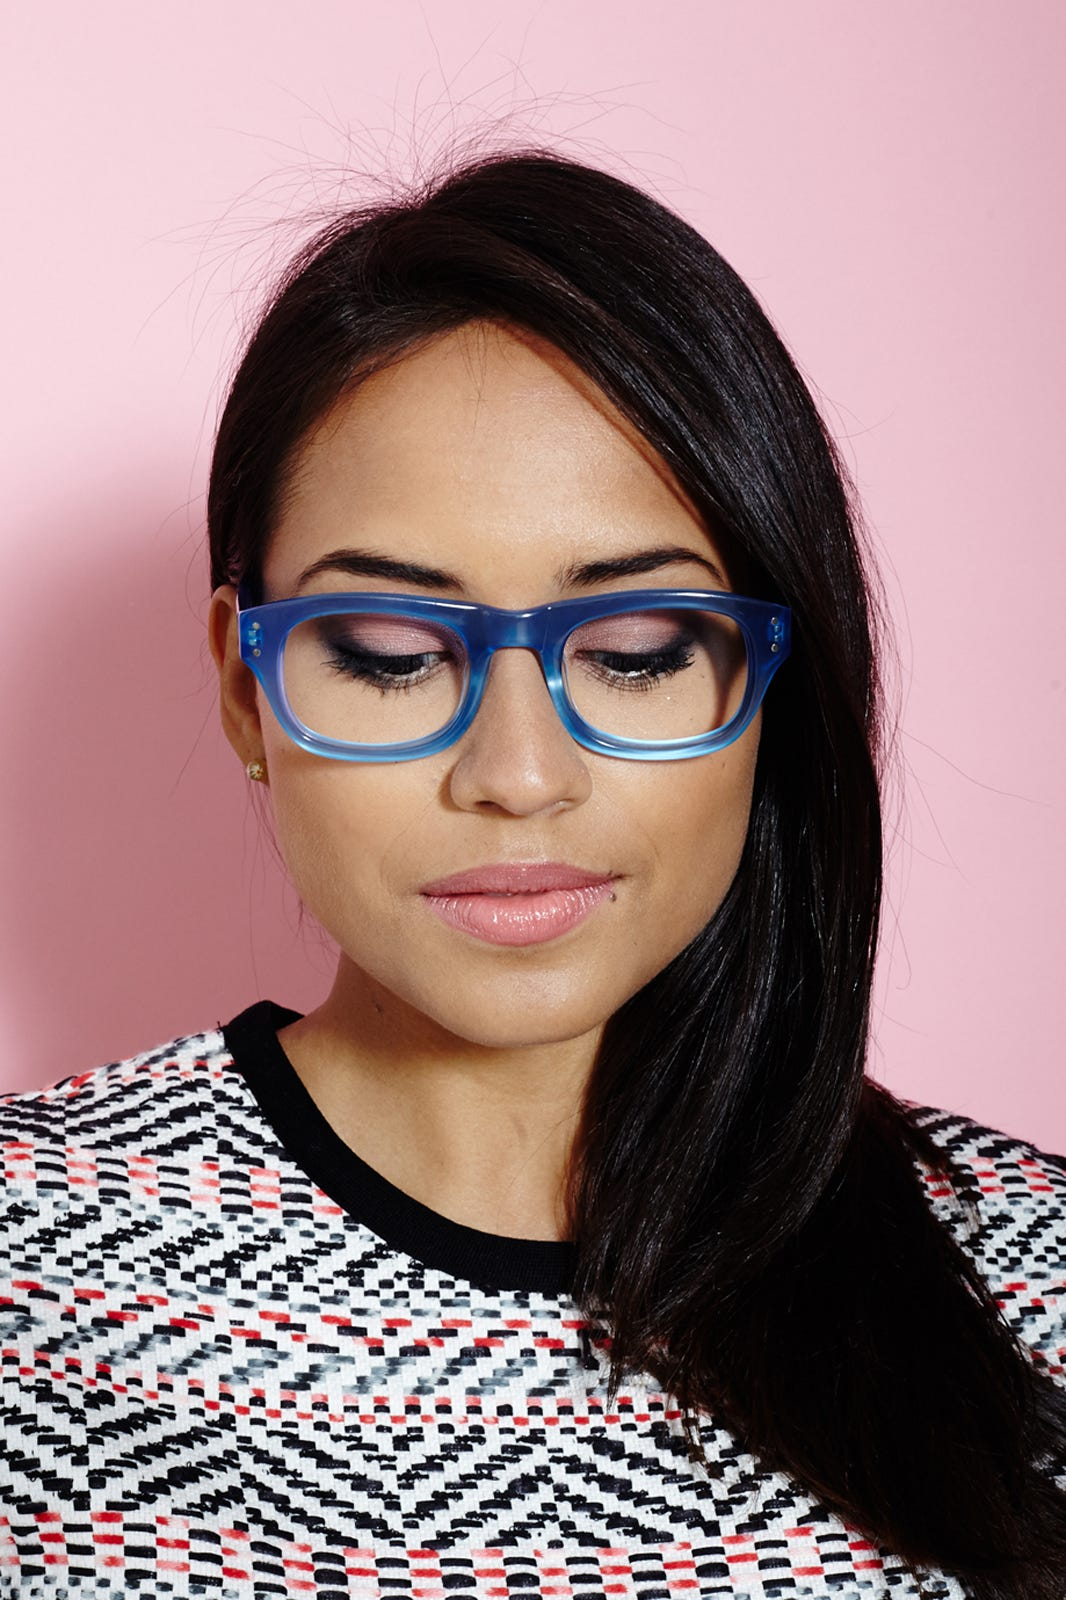 How to mascara apply while wearing glasses forecasting to wear for autumn in 2019